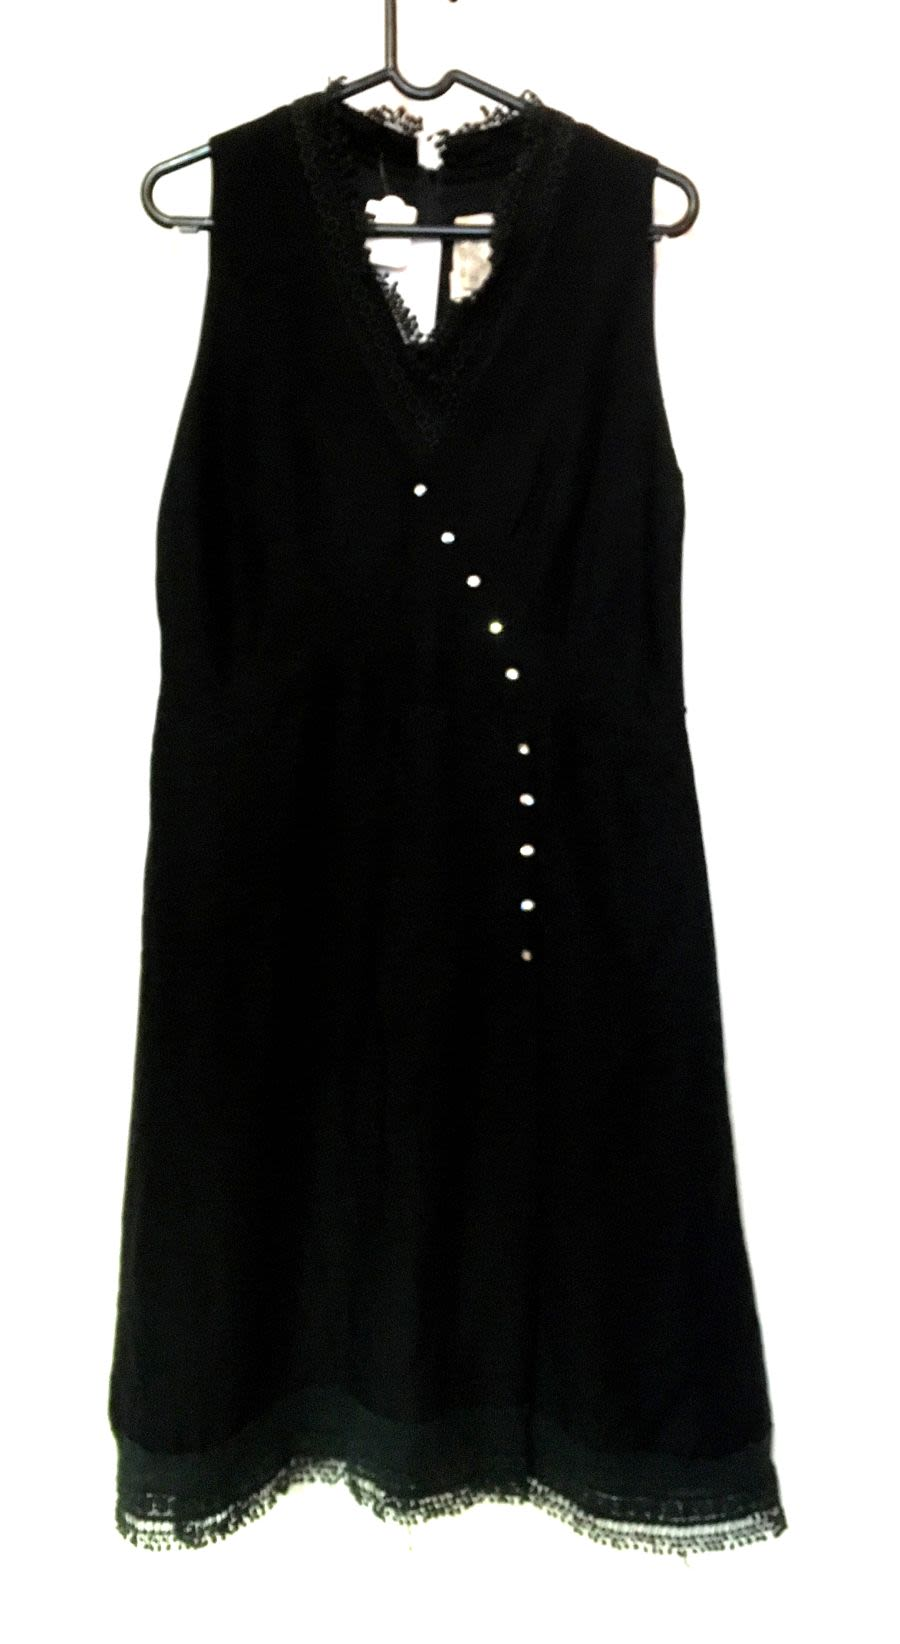 Vintage Women's 1960's Black Dress With Lace and Diamante Detail